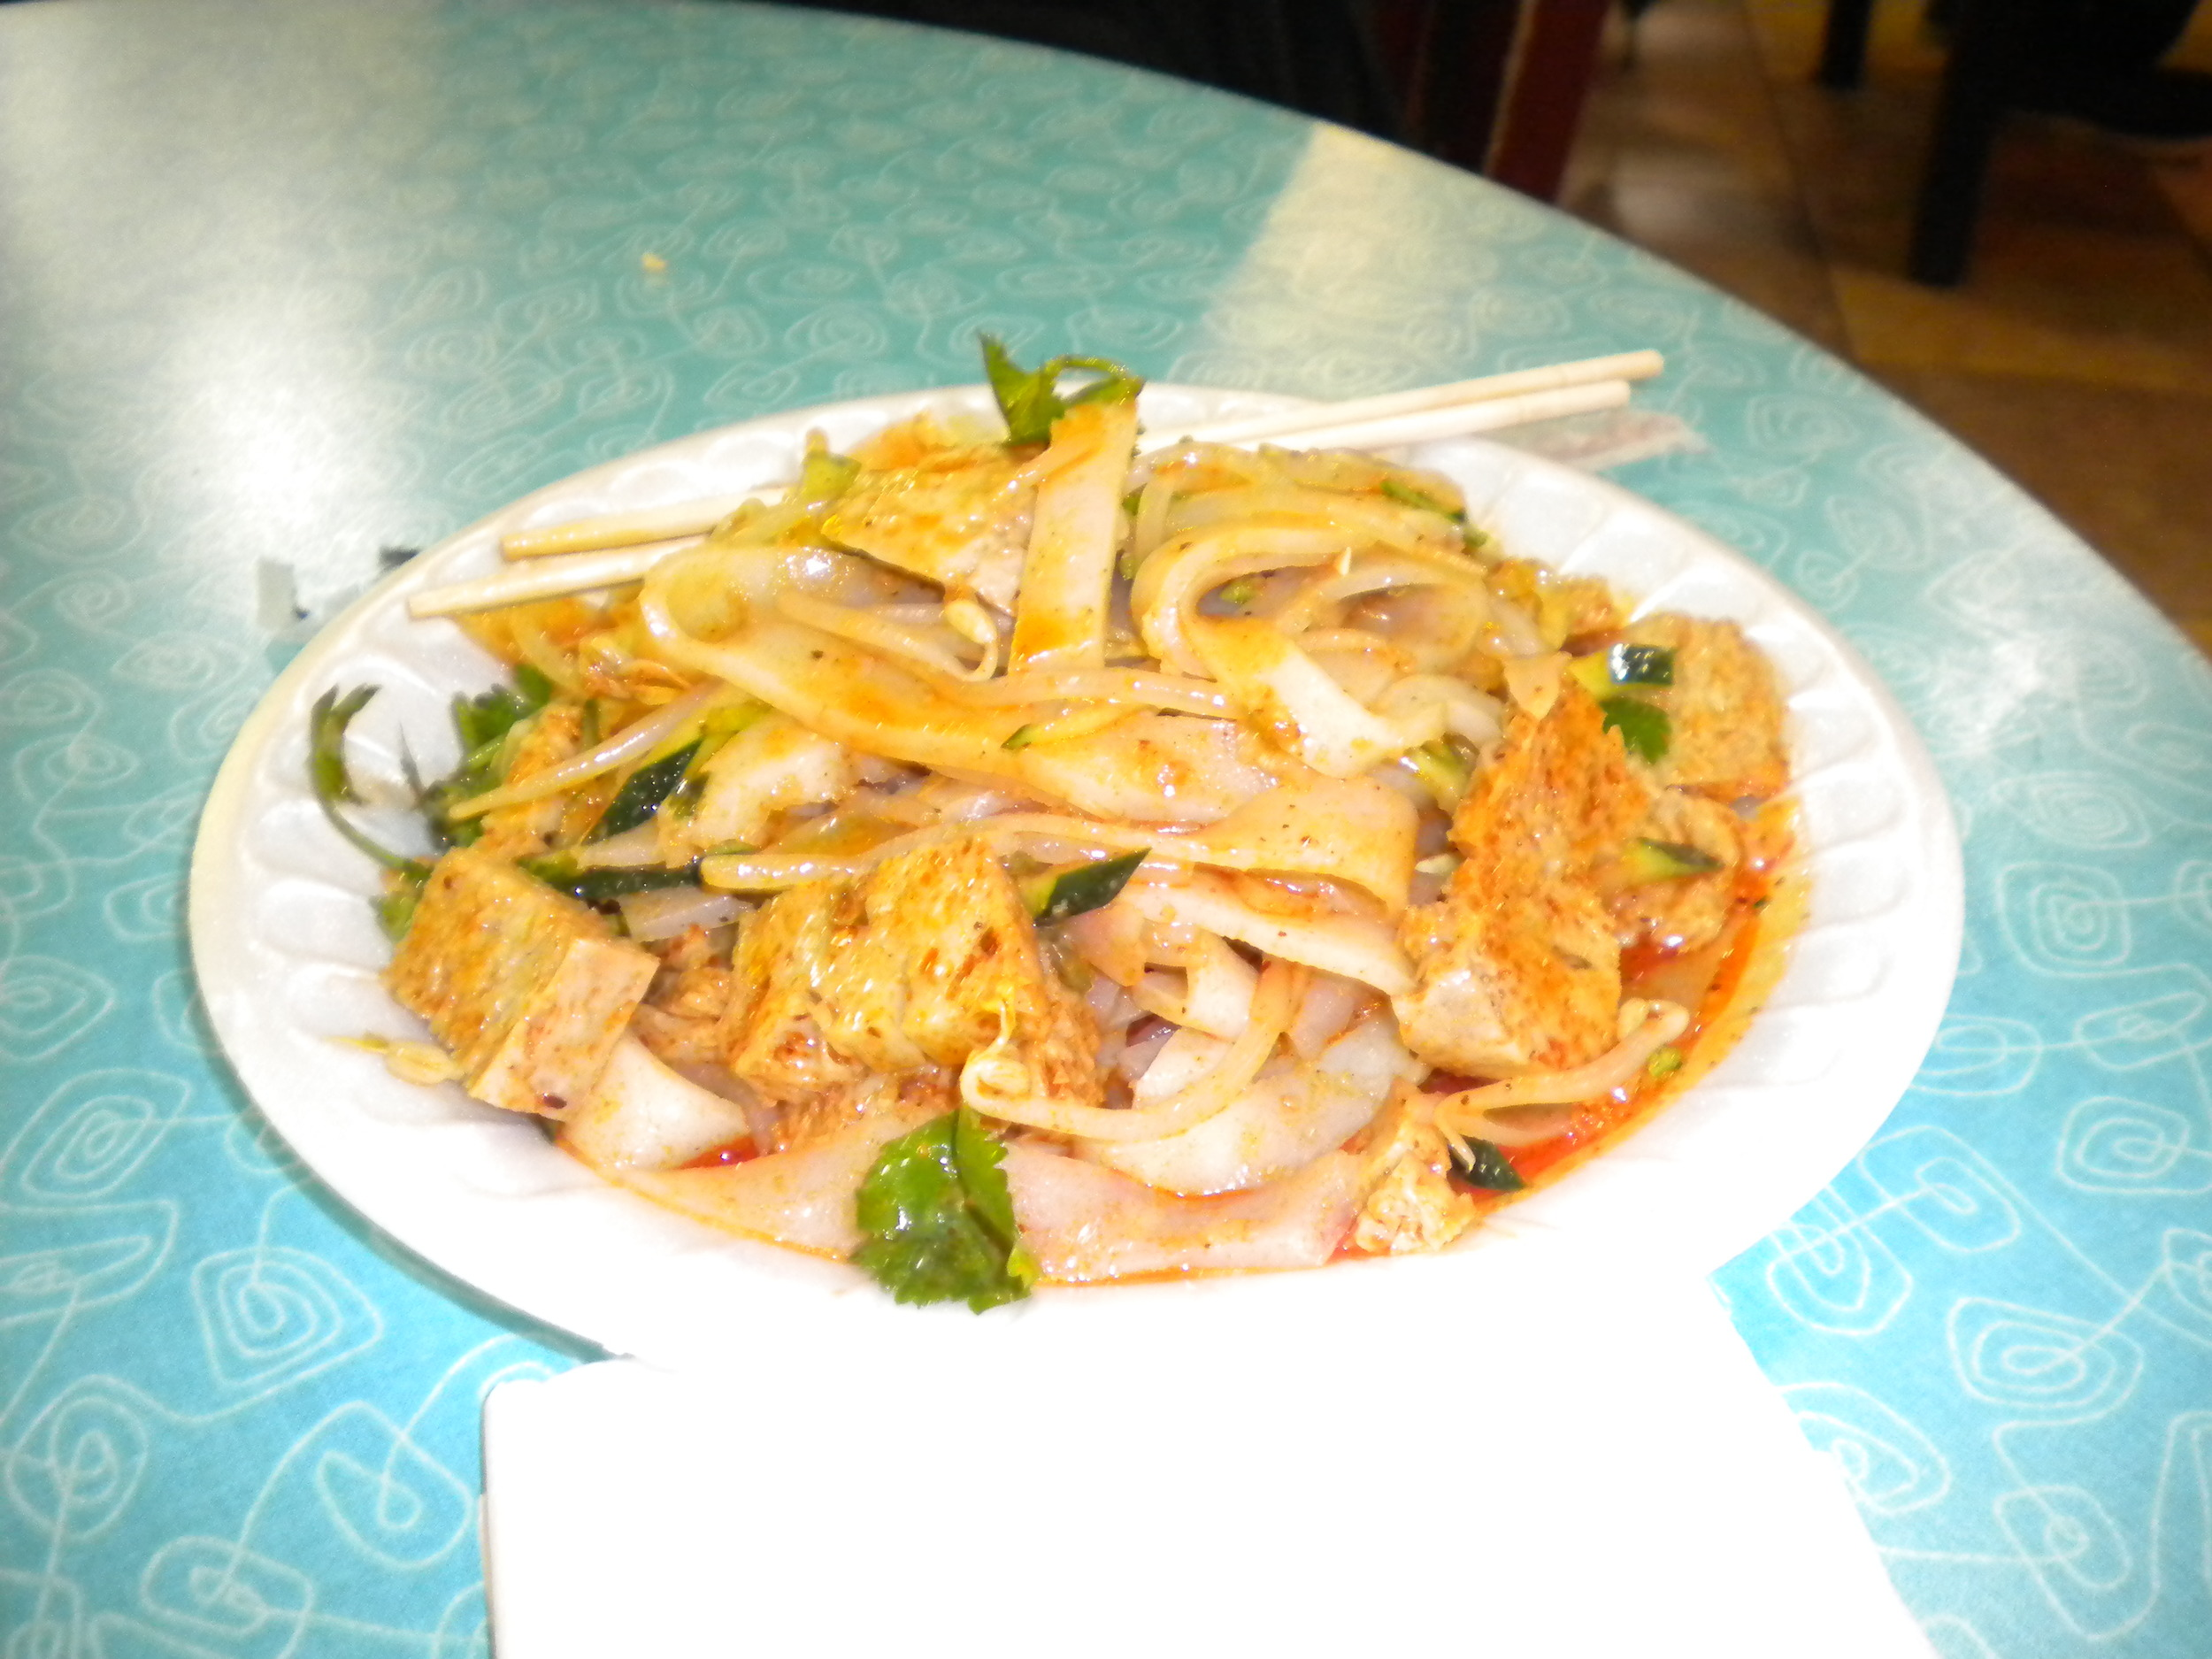 Xian noodle dish with pork and wheat germ